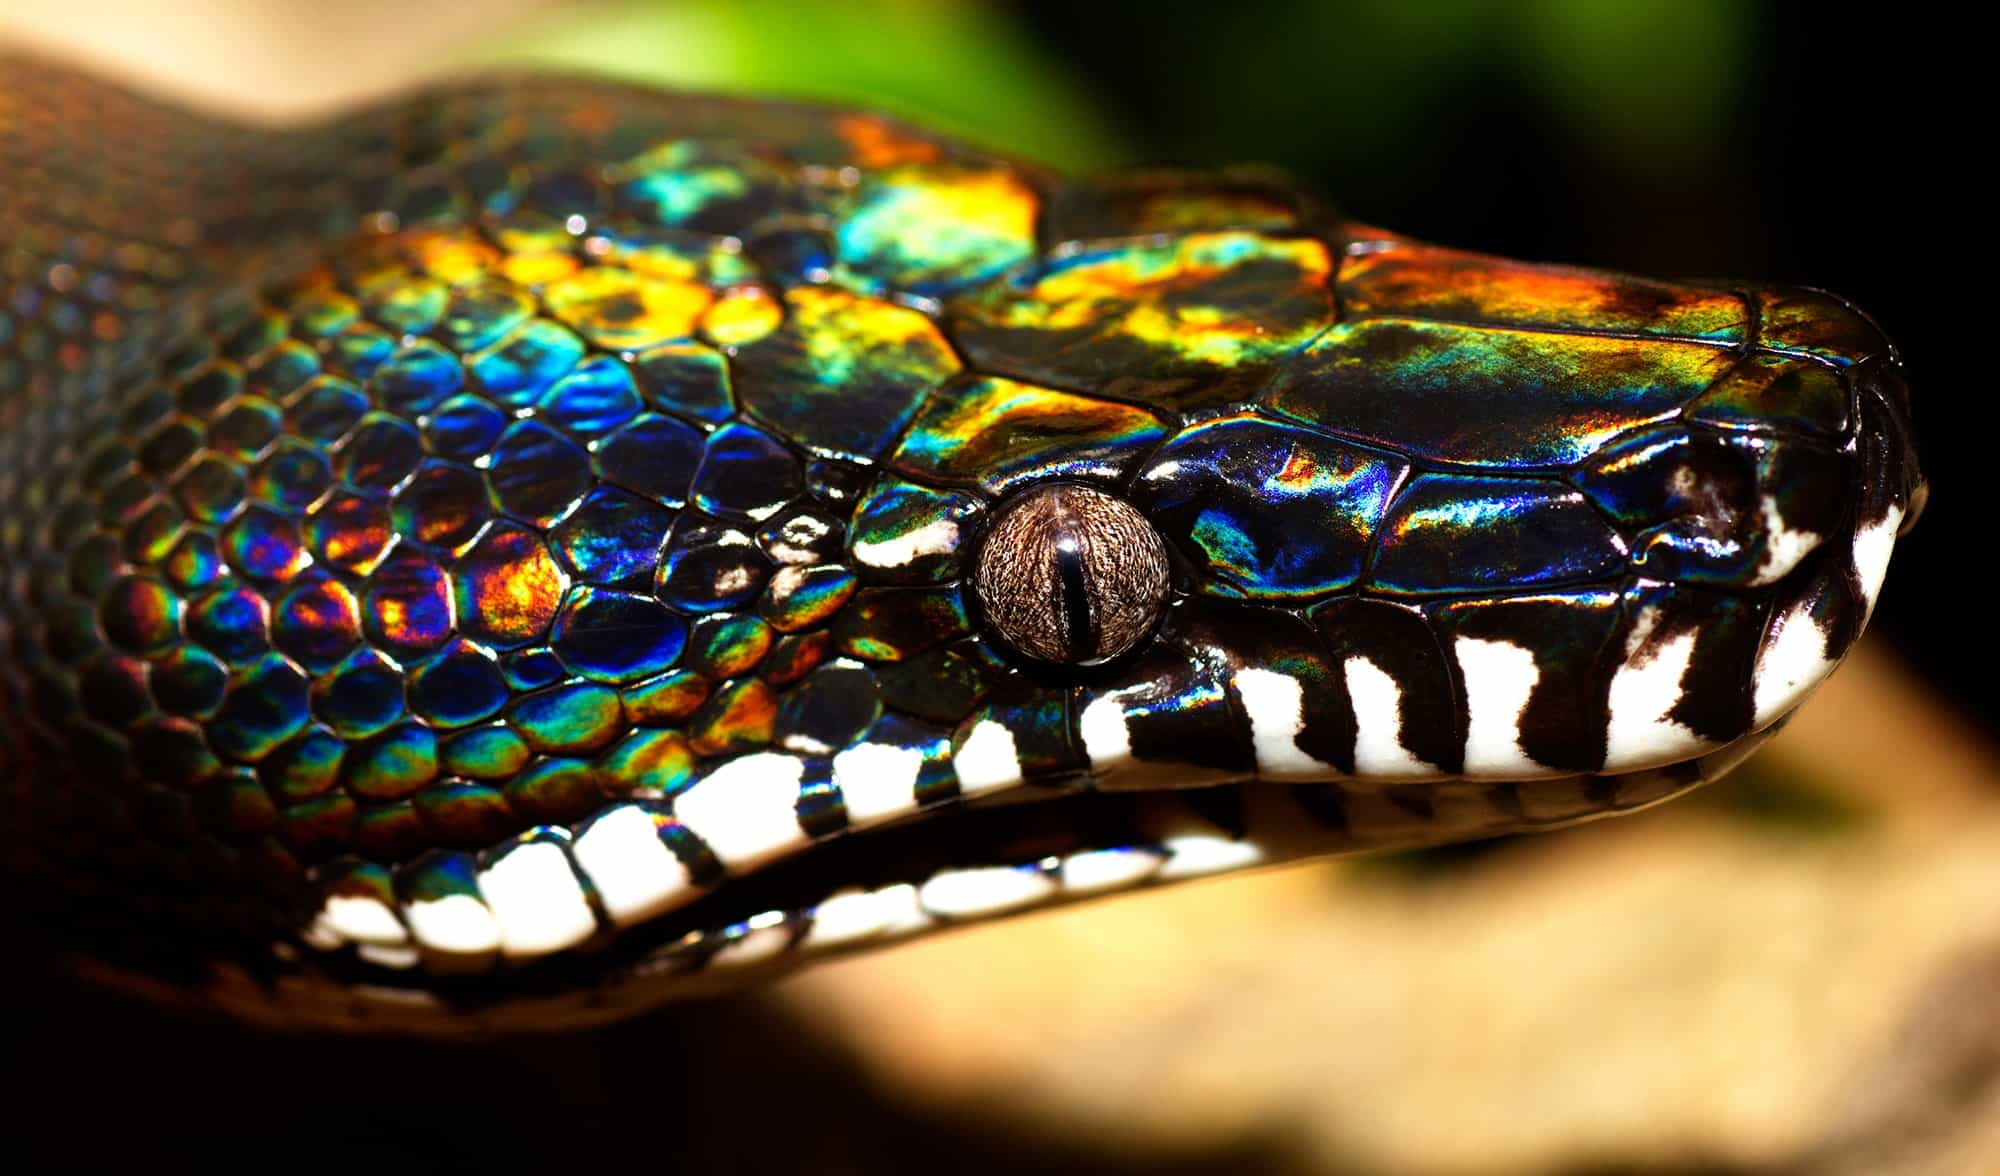 Top 10 Coolest Snakes In The World